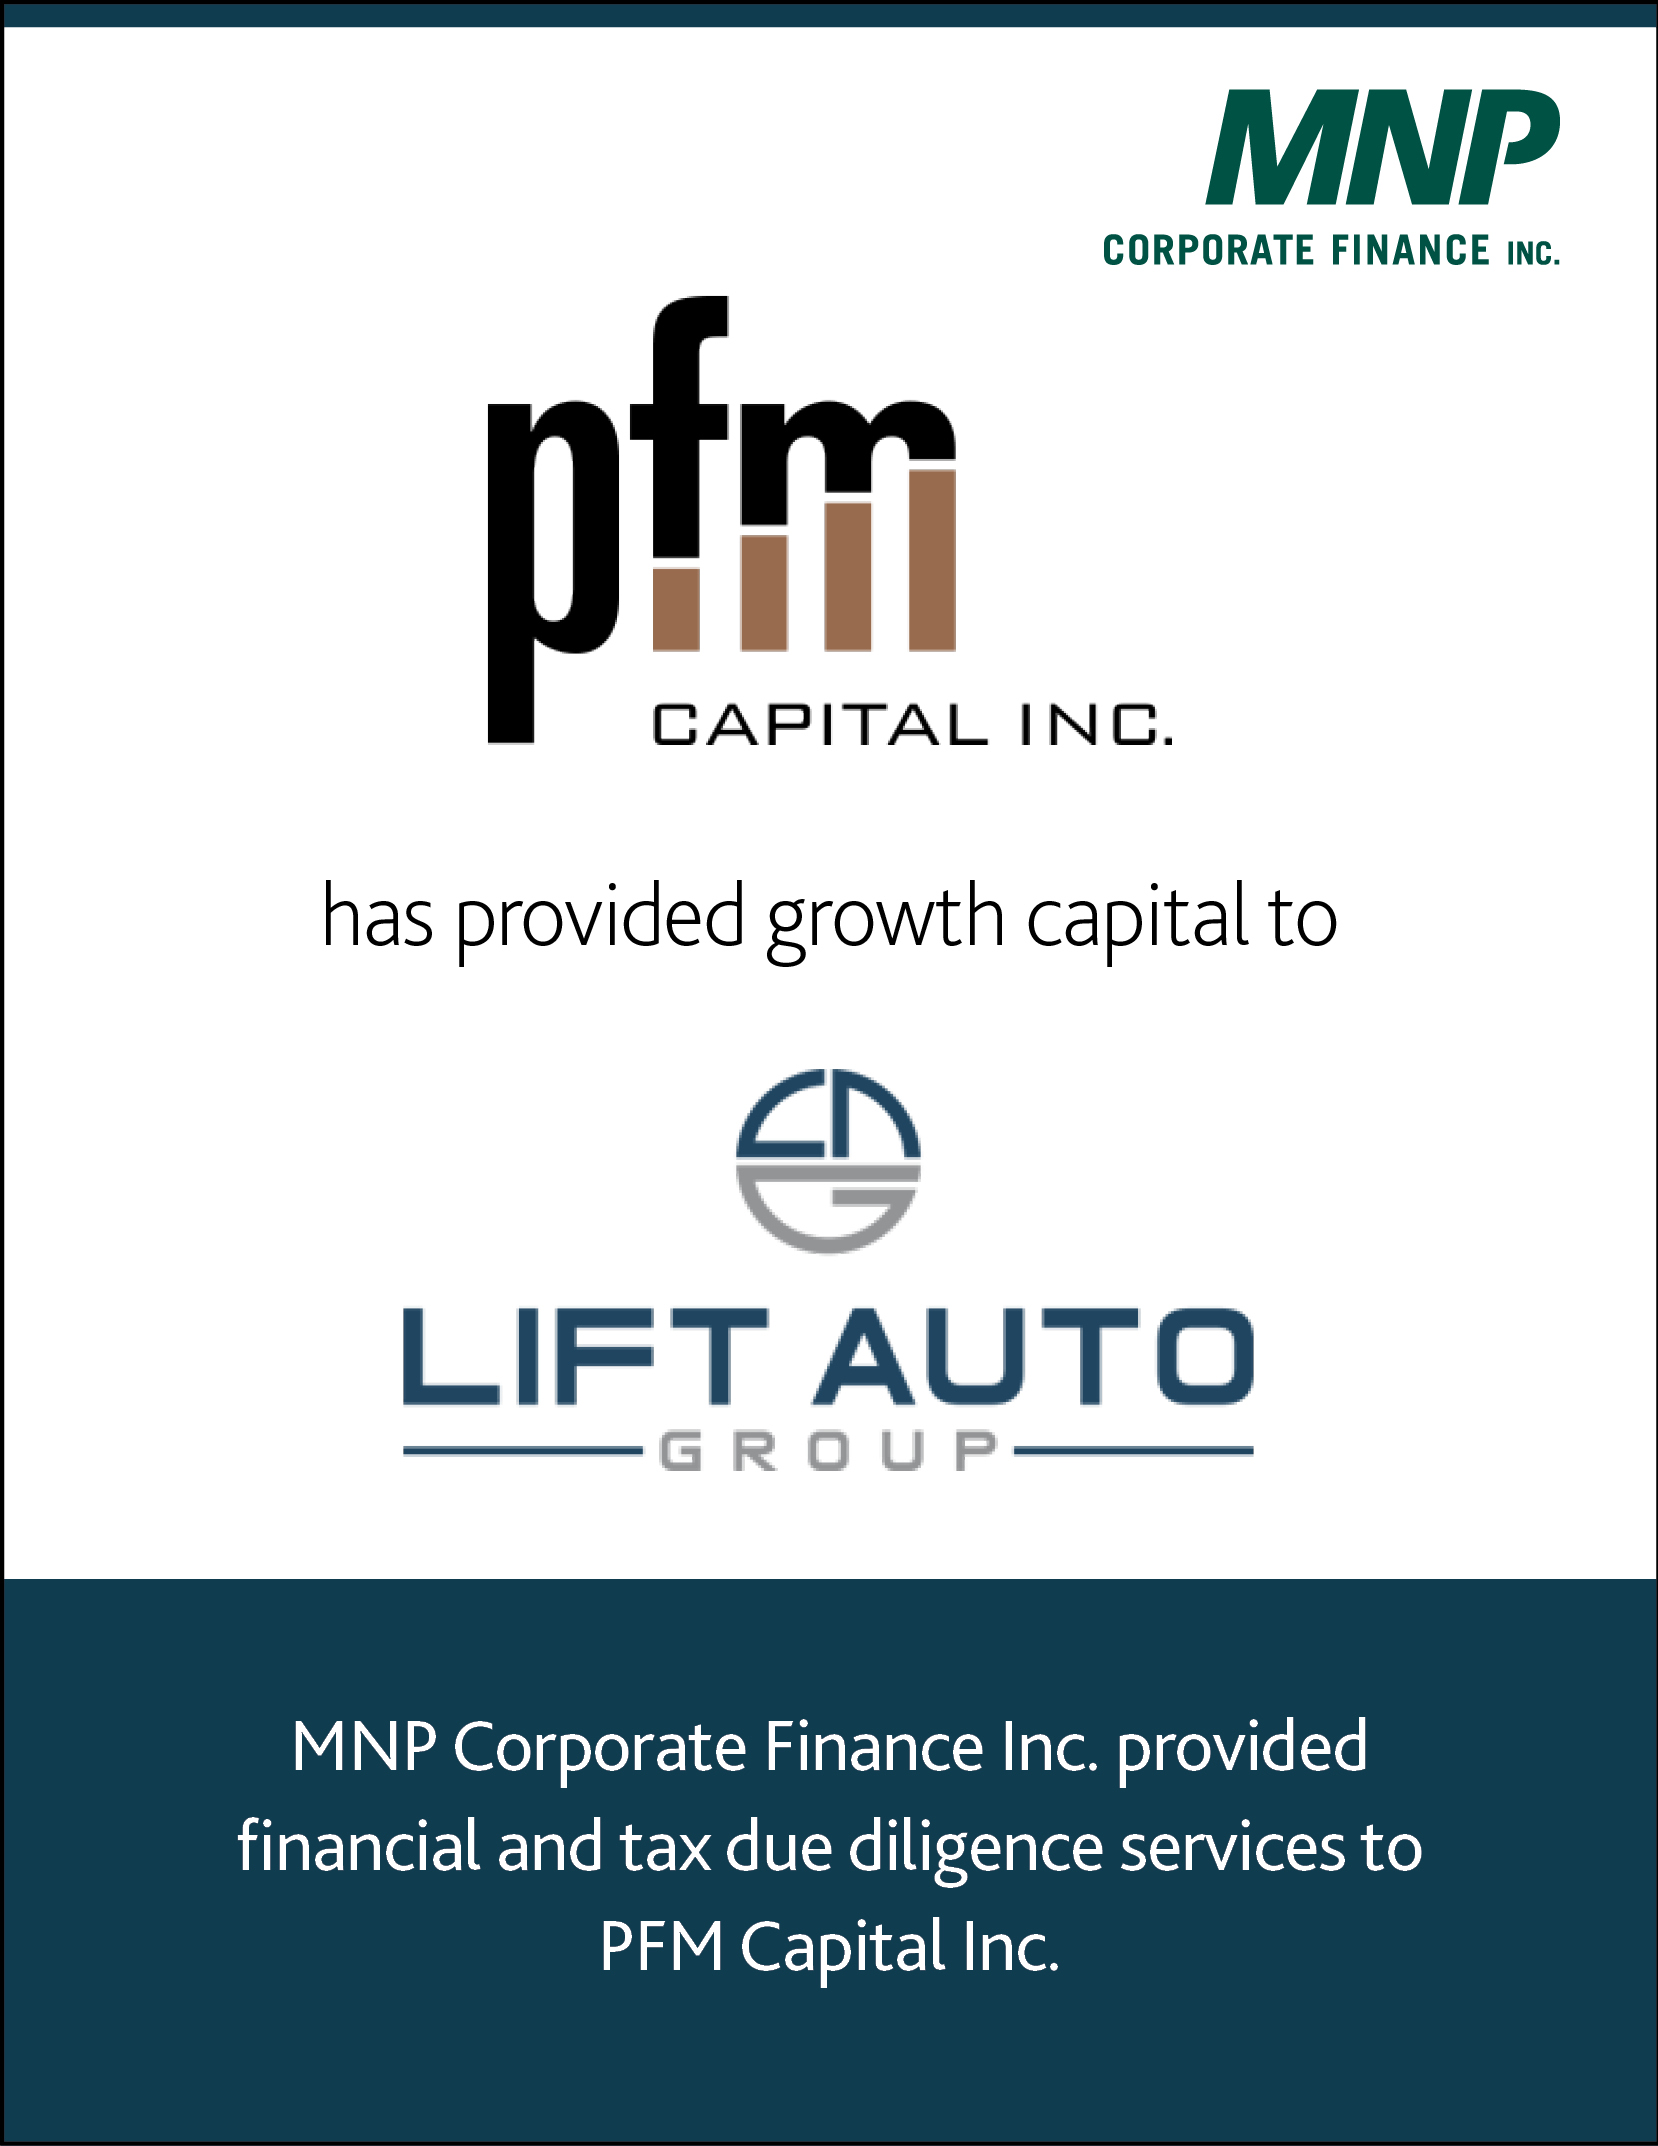 pfm capital inc has provided growth capital to Lift Auto Group